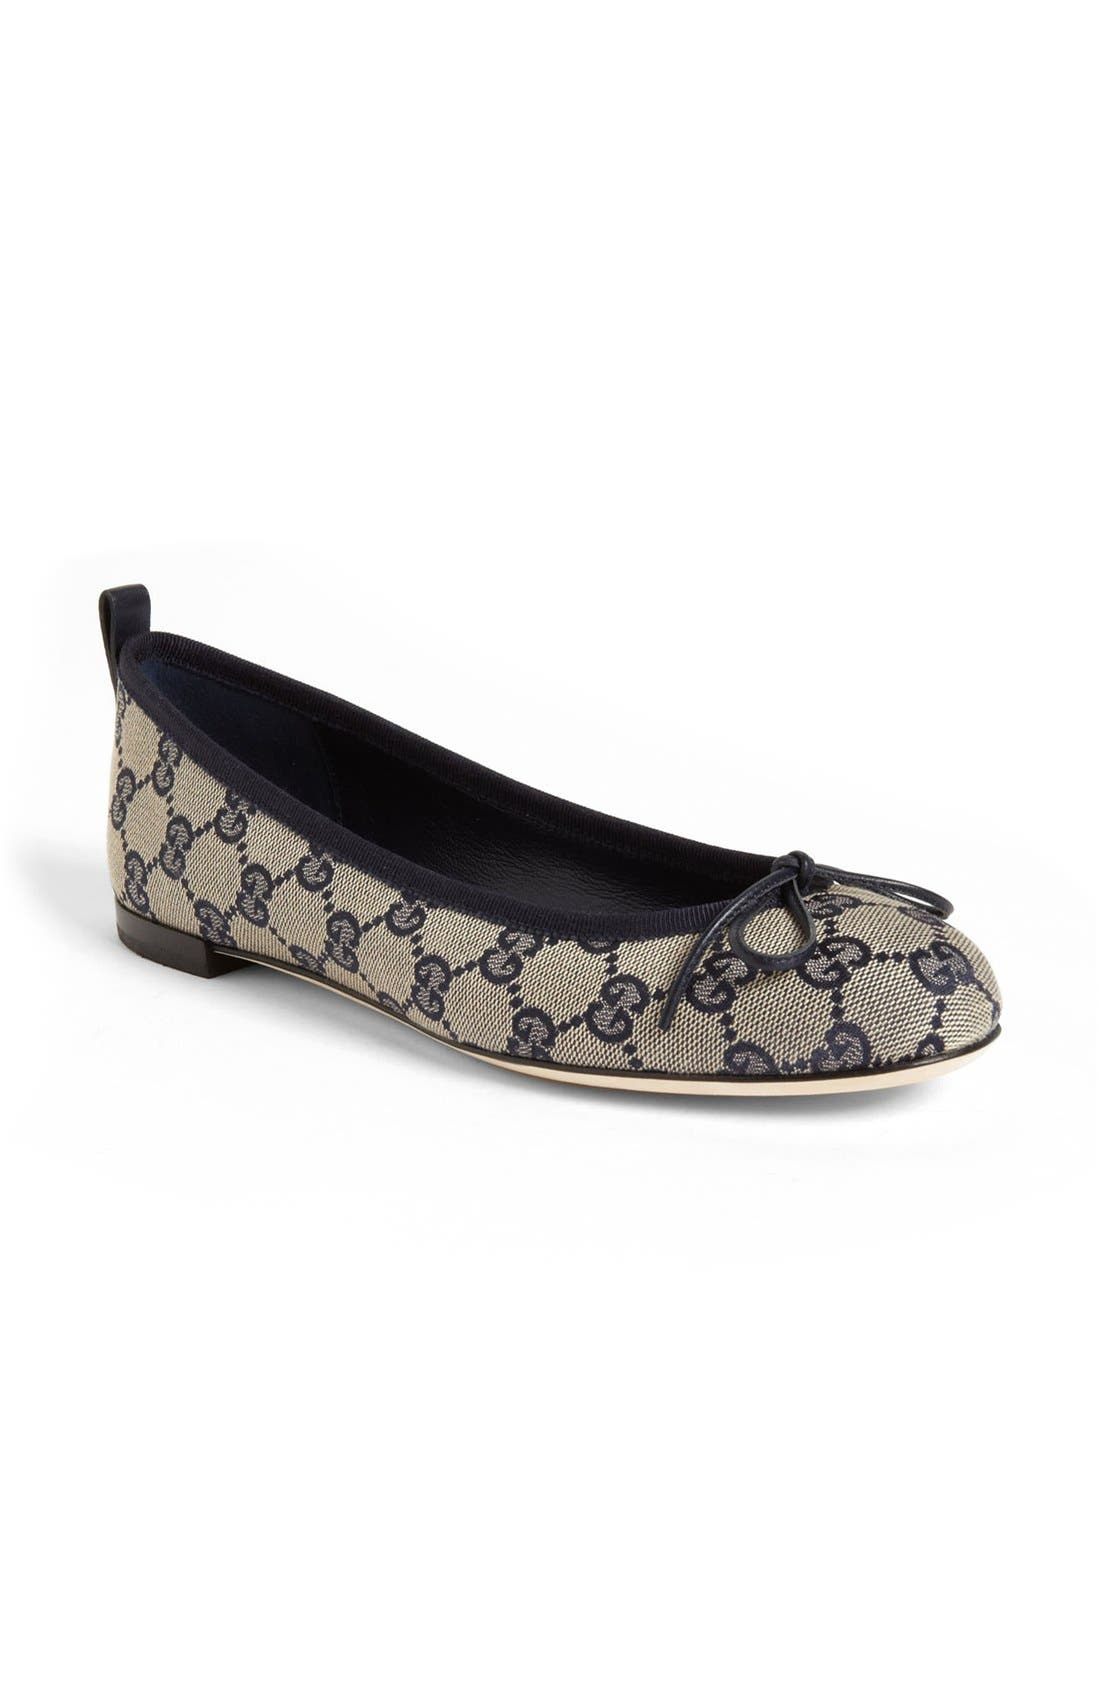 Alternate Image 1 Selected - Gucci 'Ali' Ballet Flat